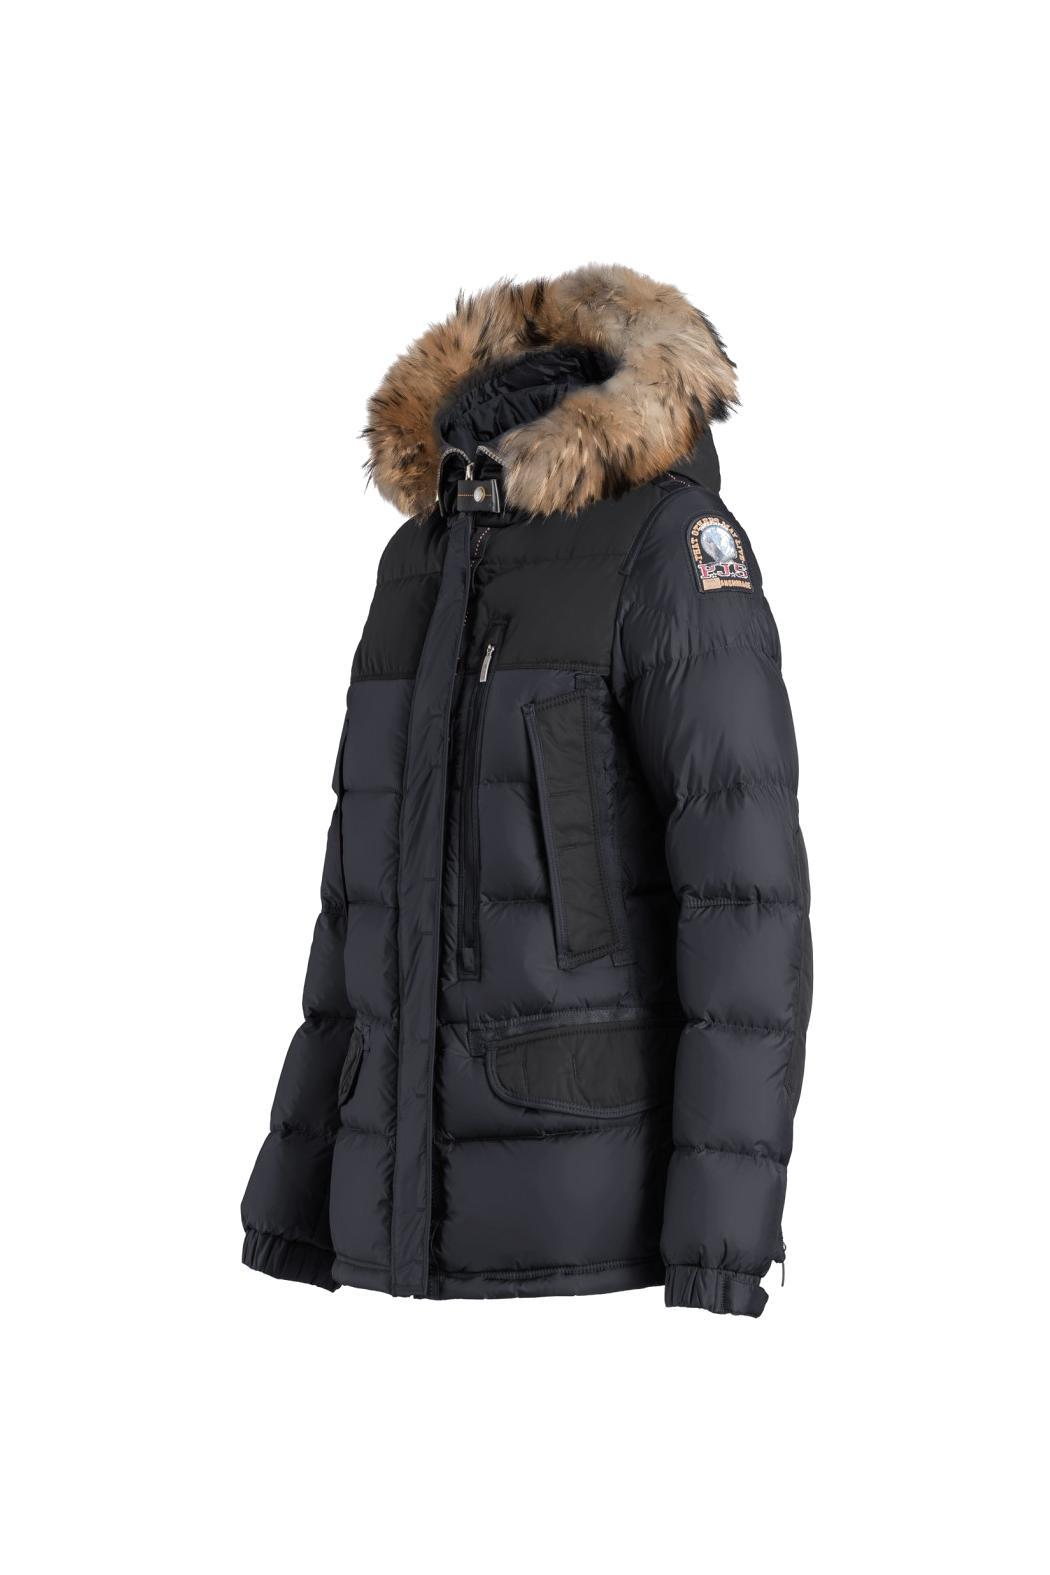 parajumpers rita coat